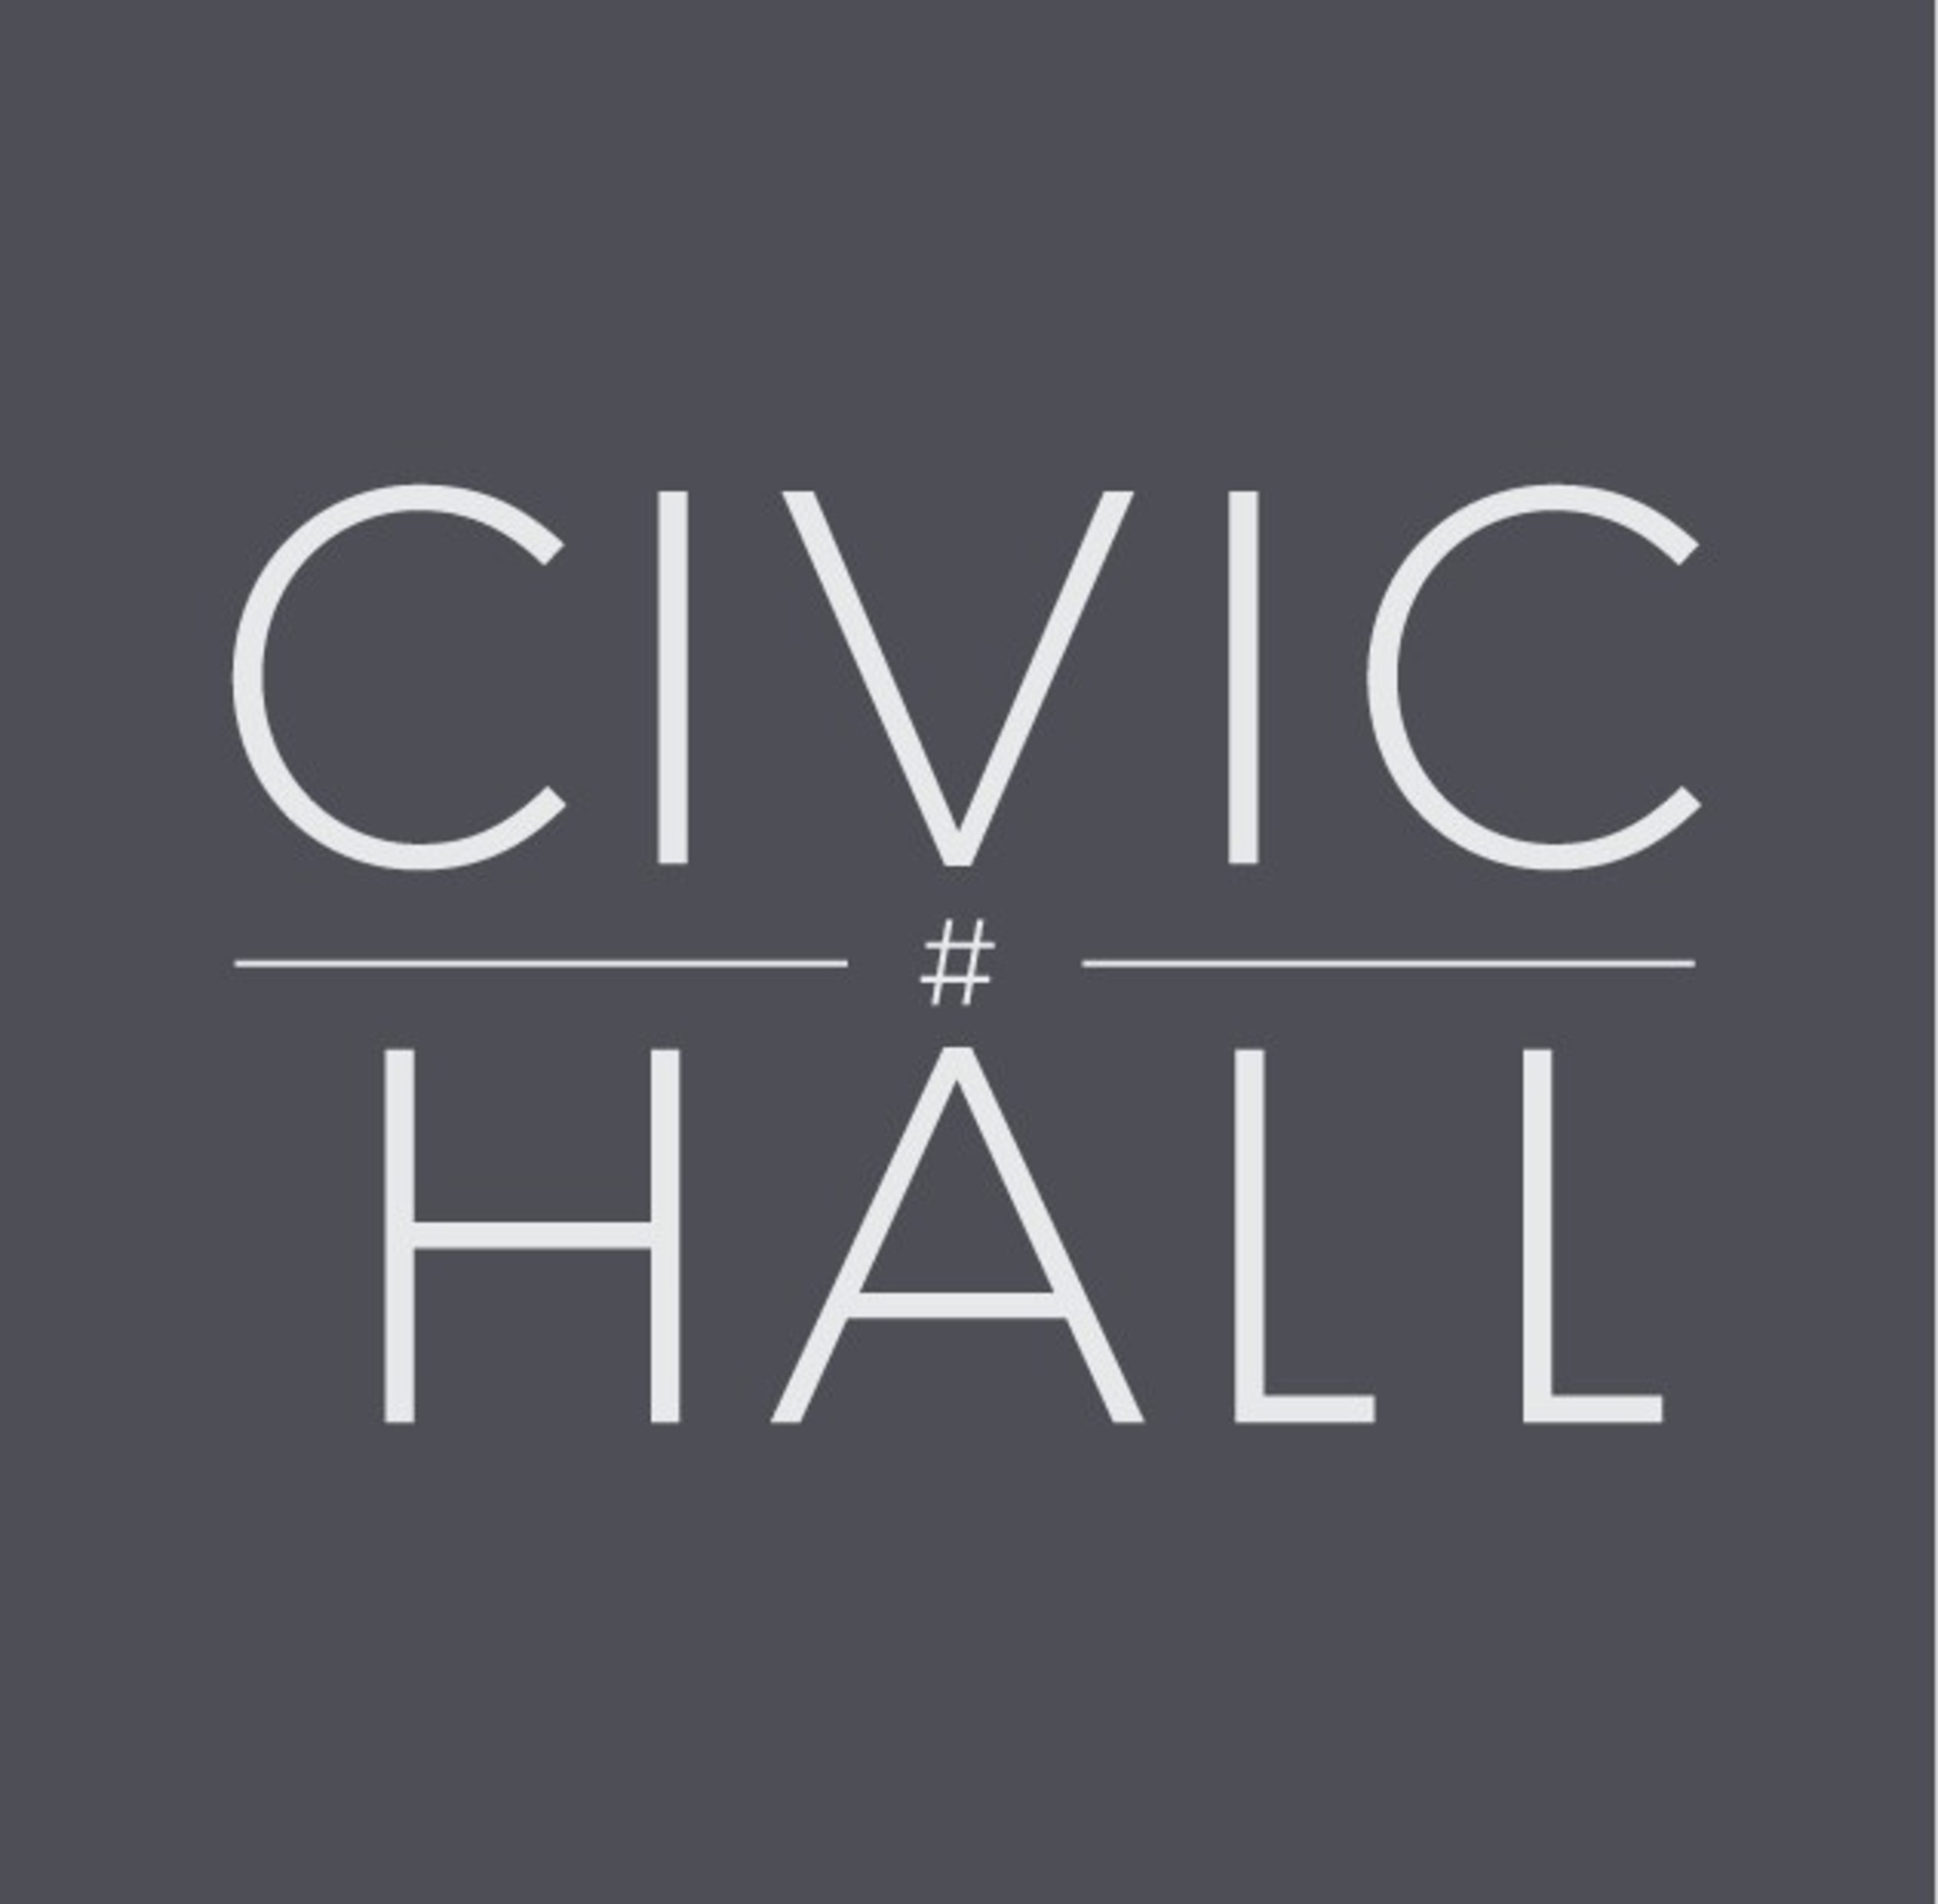 Civic Hall, Privacy International, and tech advocacy groups to announce That's Not Privacy campaign to re-label websites' 'Privacy Policies'